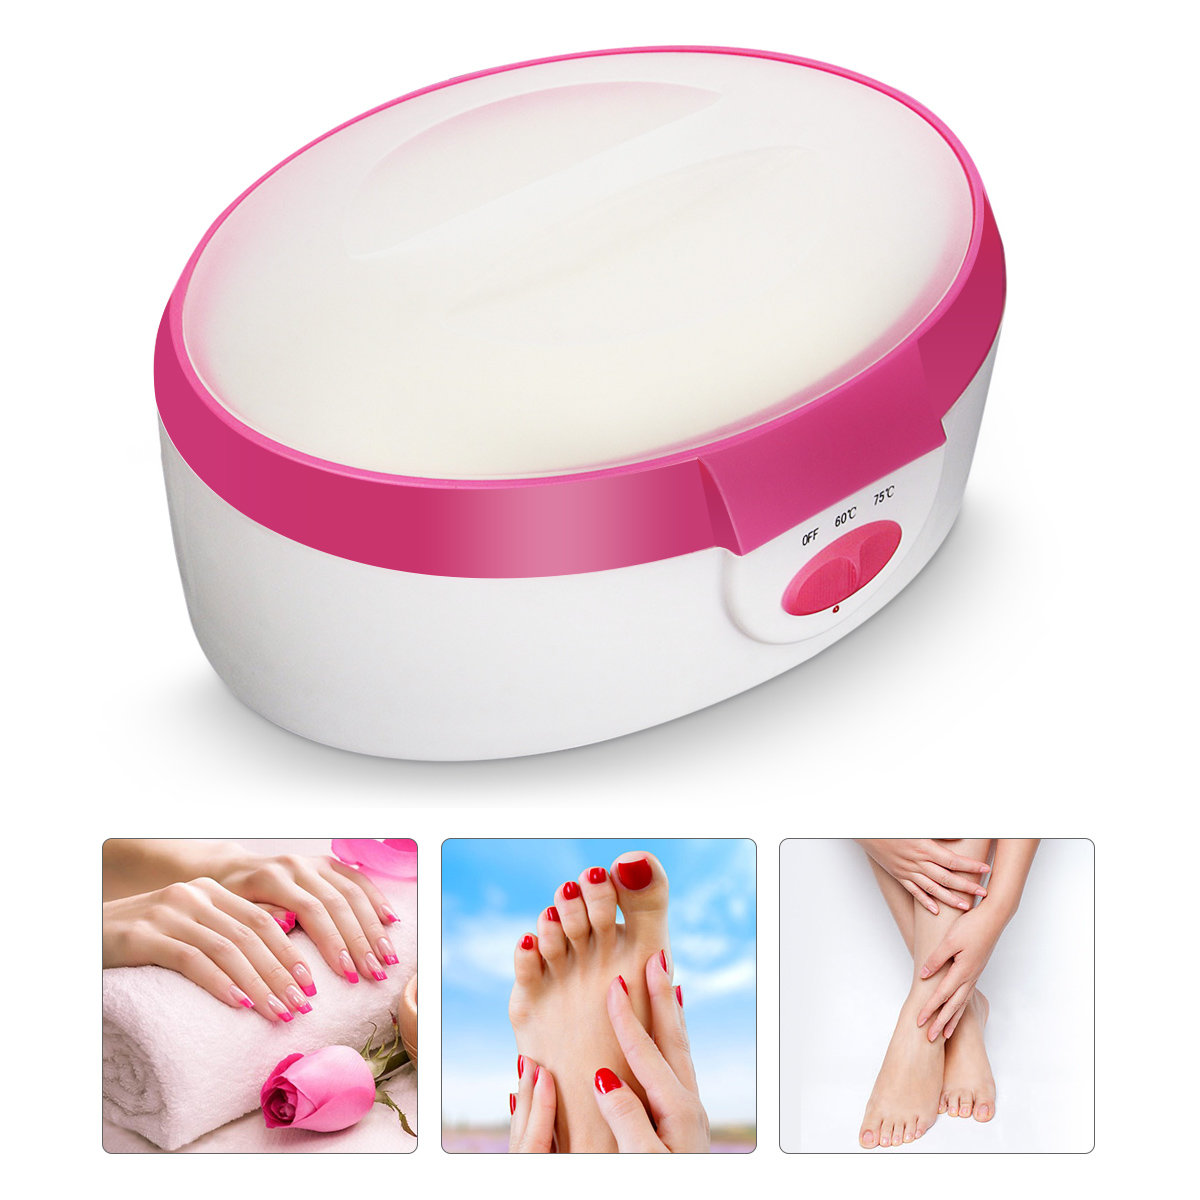 110V -120V Paraffin Wax Therapy Treatment Machine Heating Warmer Hand Foot Skin Care Spa US Plug